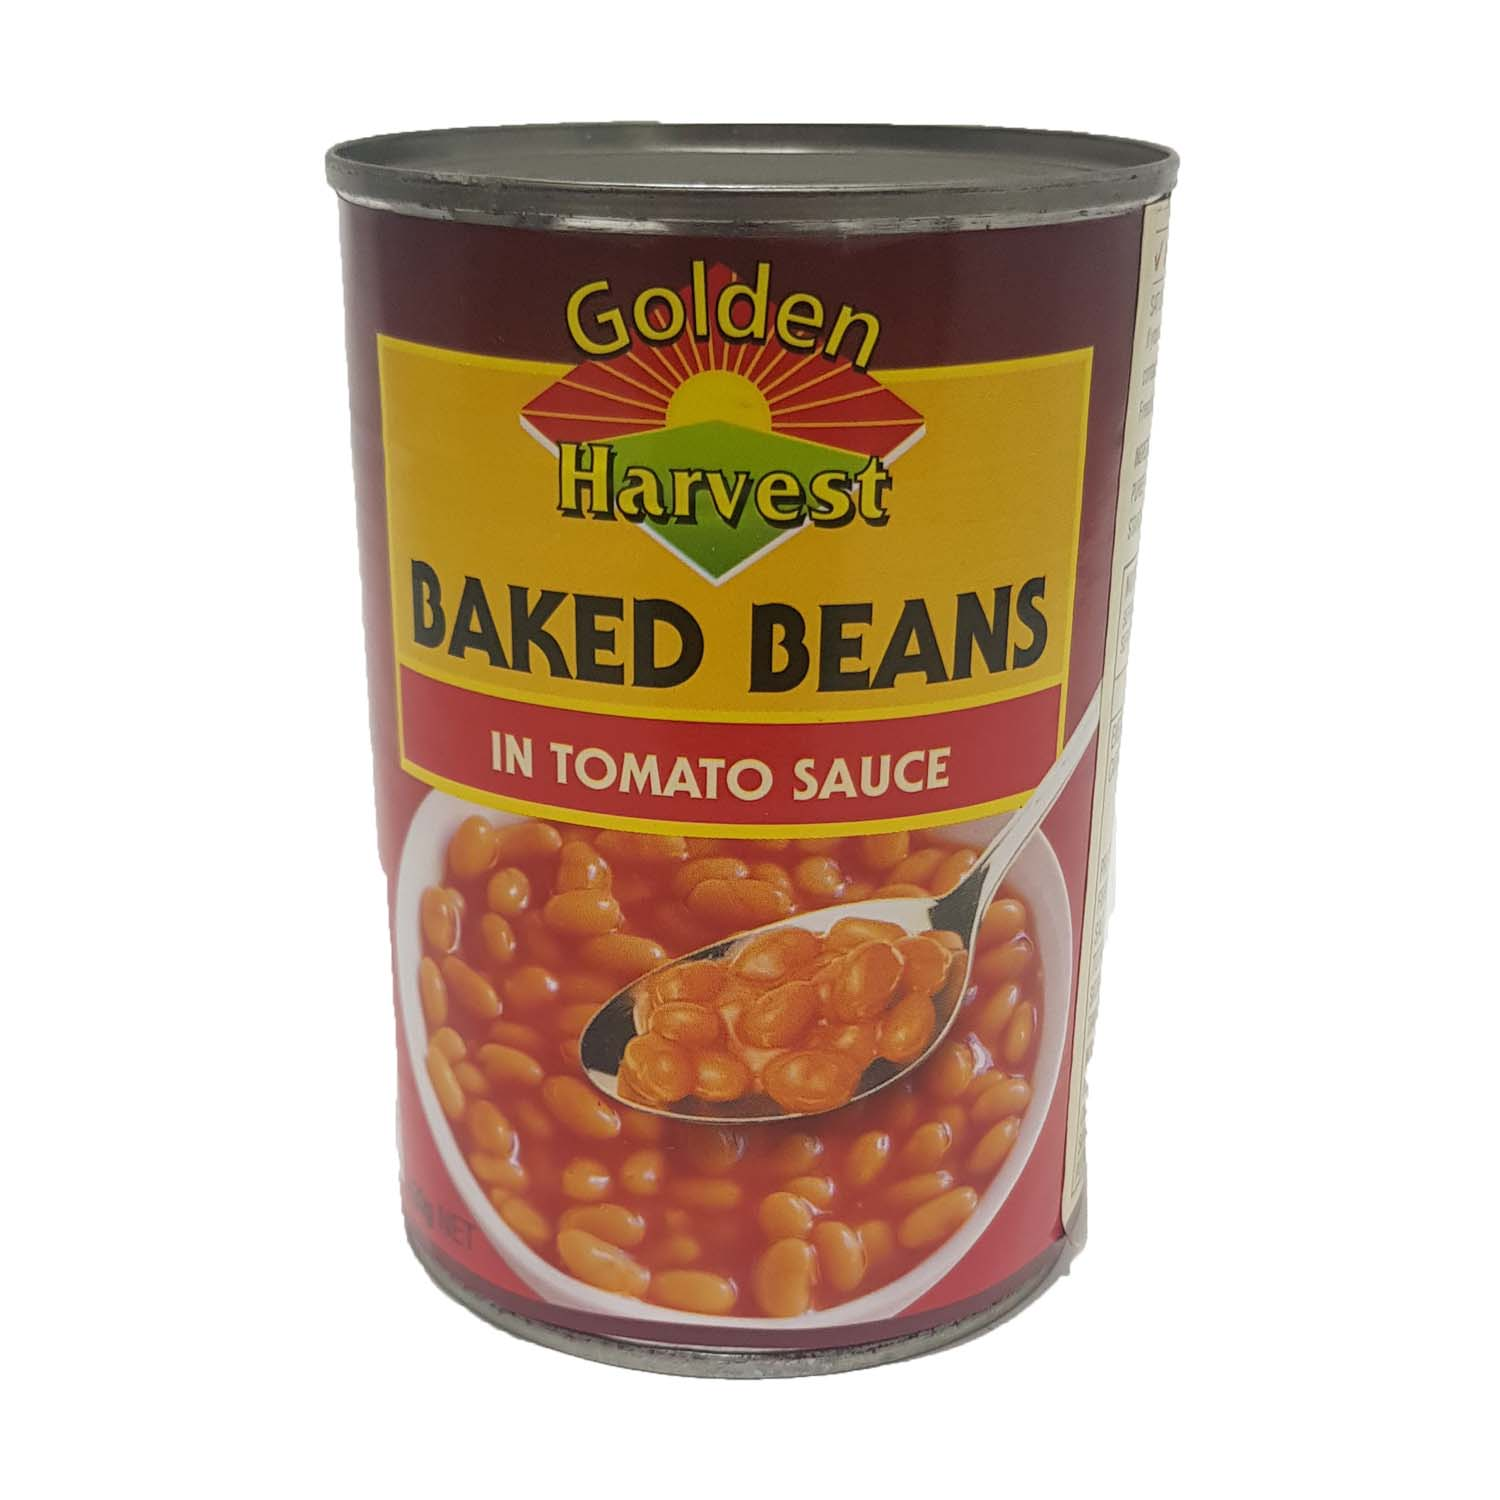 Golden Harvest Baked Beans	420g